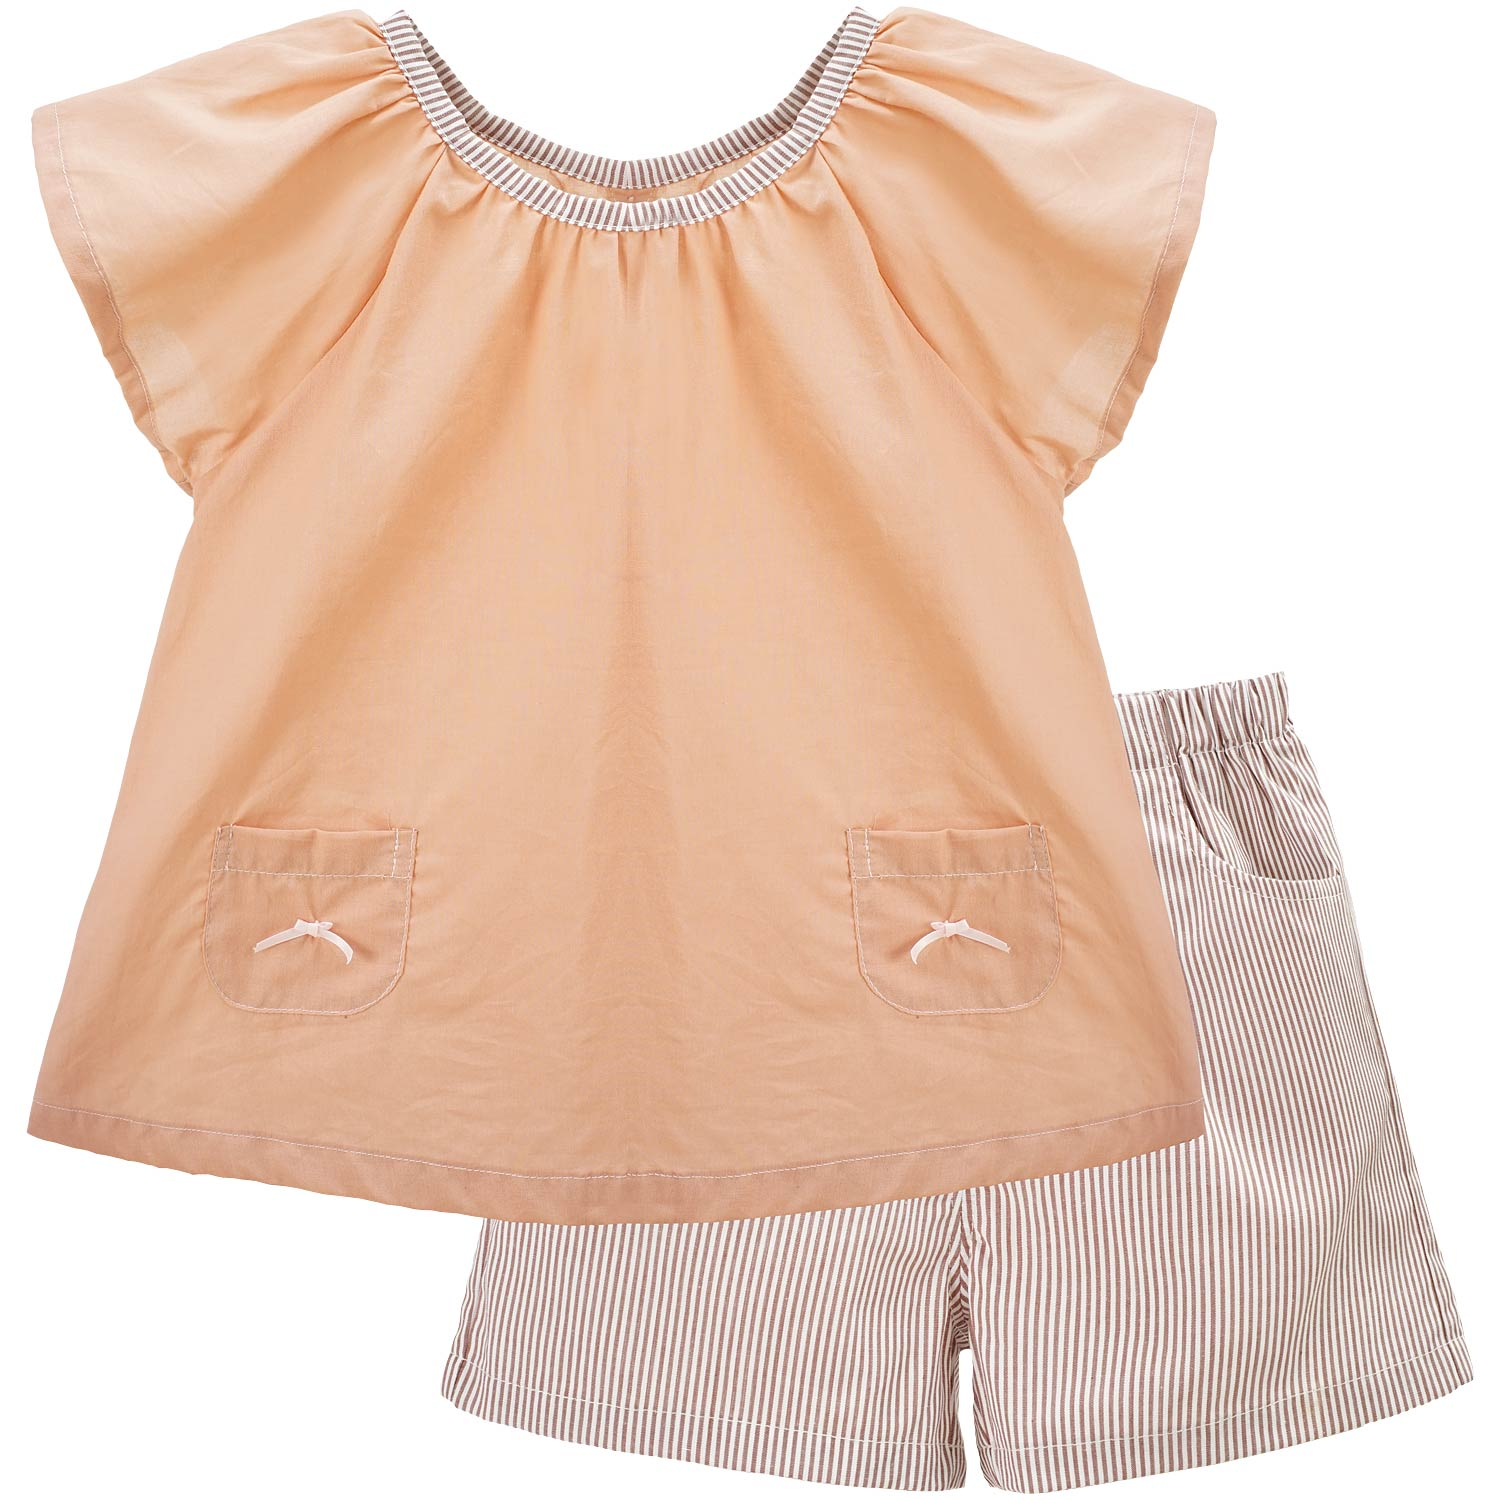 Yingzifang Limited New Cotton 2017 Girls Baby Summer Casual Clothing Sets Solid Color Girl Tops Shirts